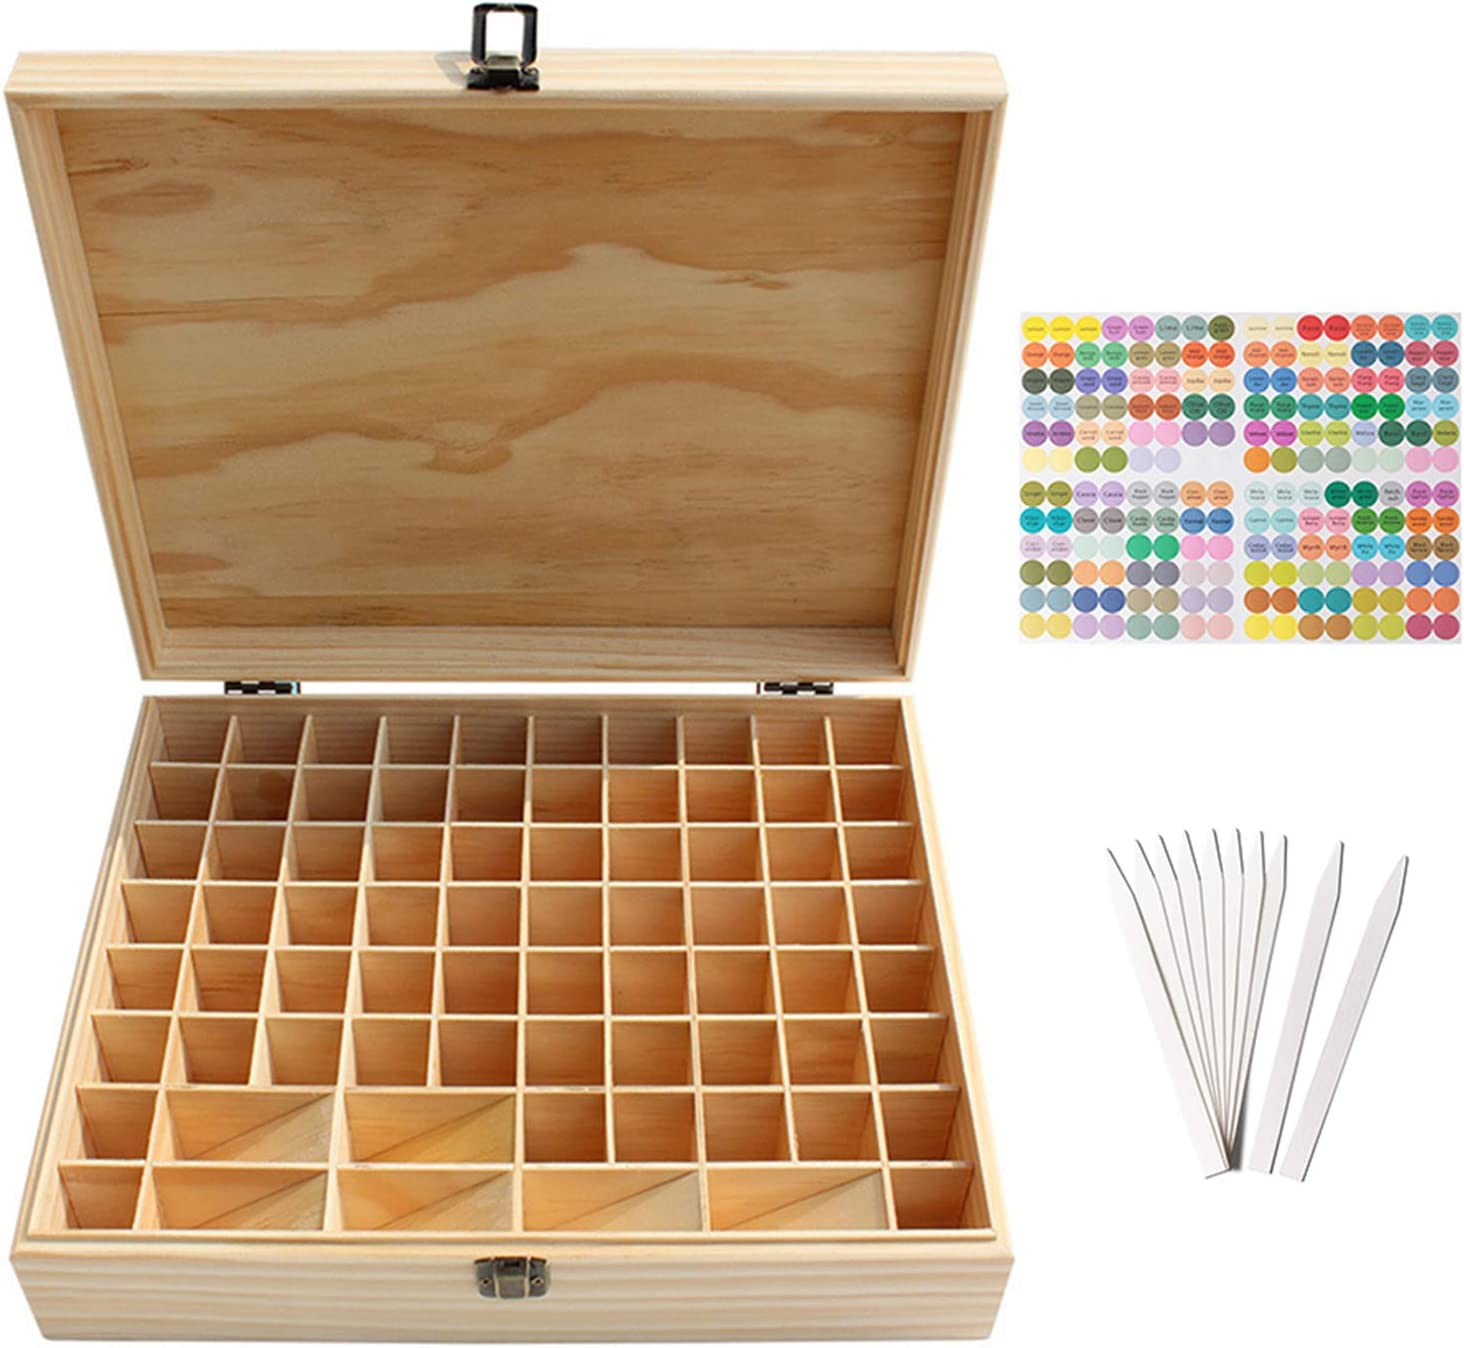 Pure Vie Wooden Essential Oil Storage Box Home Fragrance Carrier Case, Holds 74 Bottle (Fits 5-20ml) - Aromatherapy Organizer Makeup Nail Polish Perfume Container - Keep Your Oil Safe & Space Saver